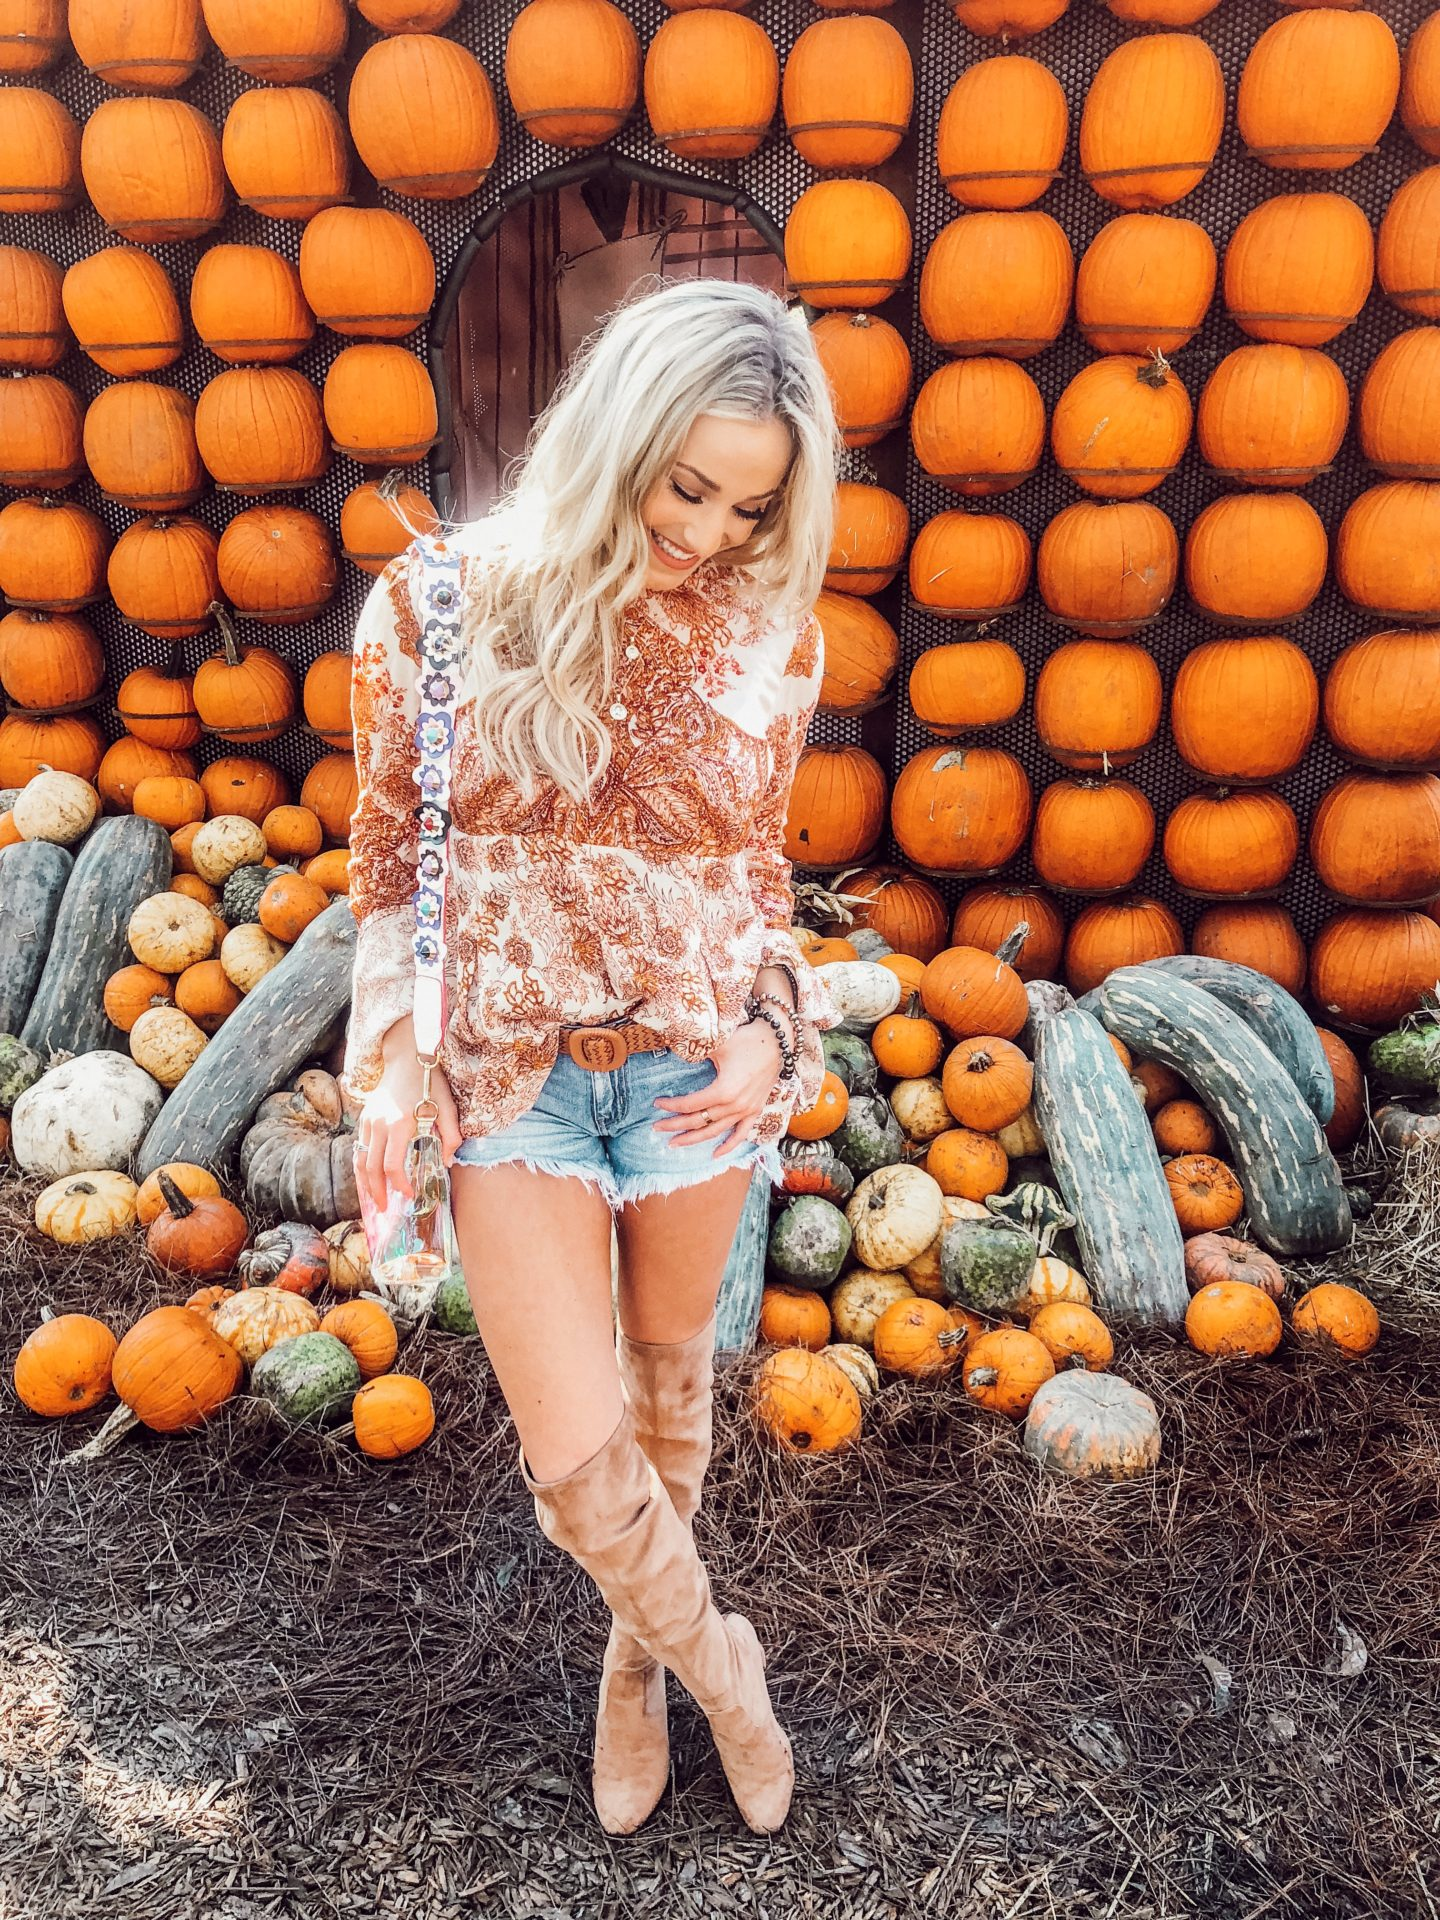 Pumpkin Patch - Dallas Fashion Model, Fashion & Lifestyle Blogger - Peyton Mabry